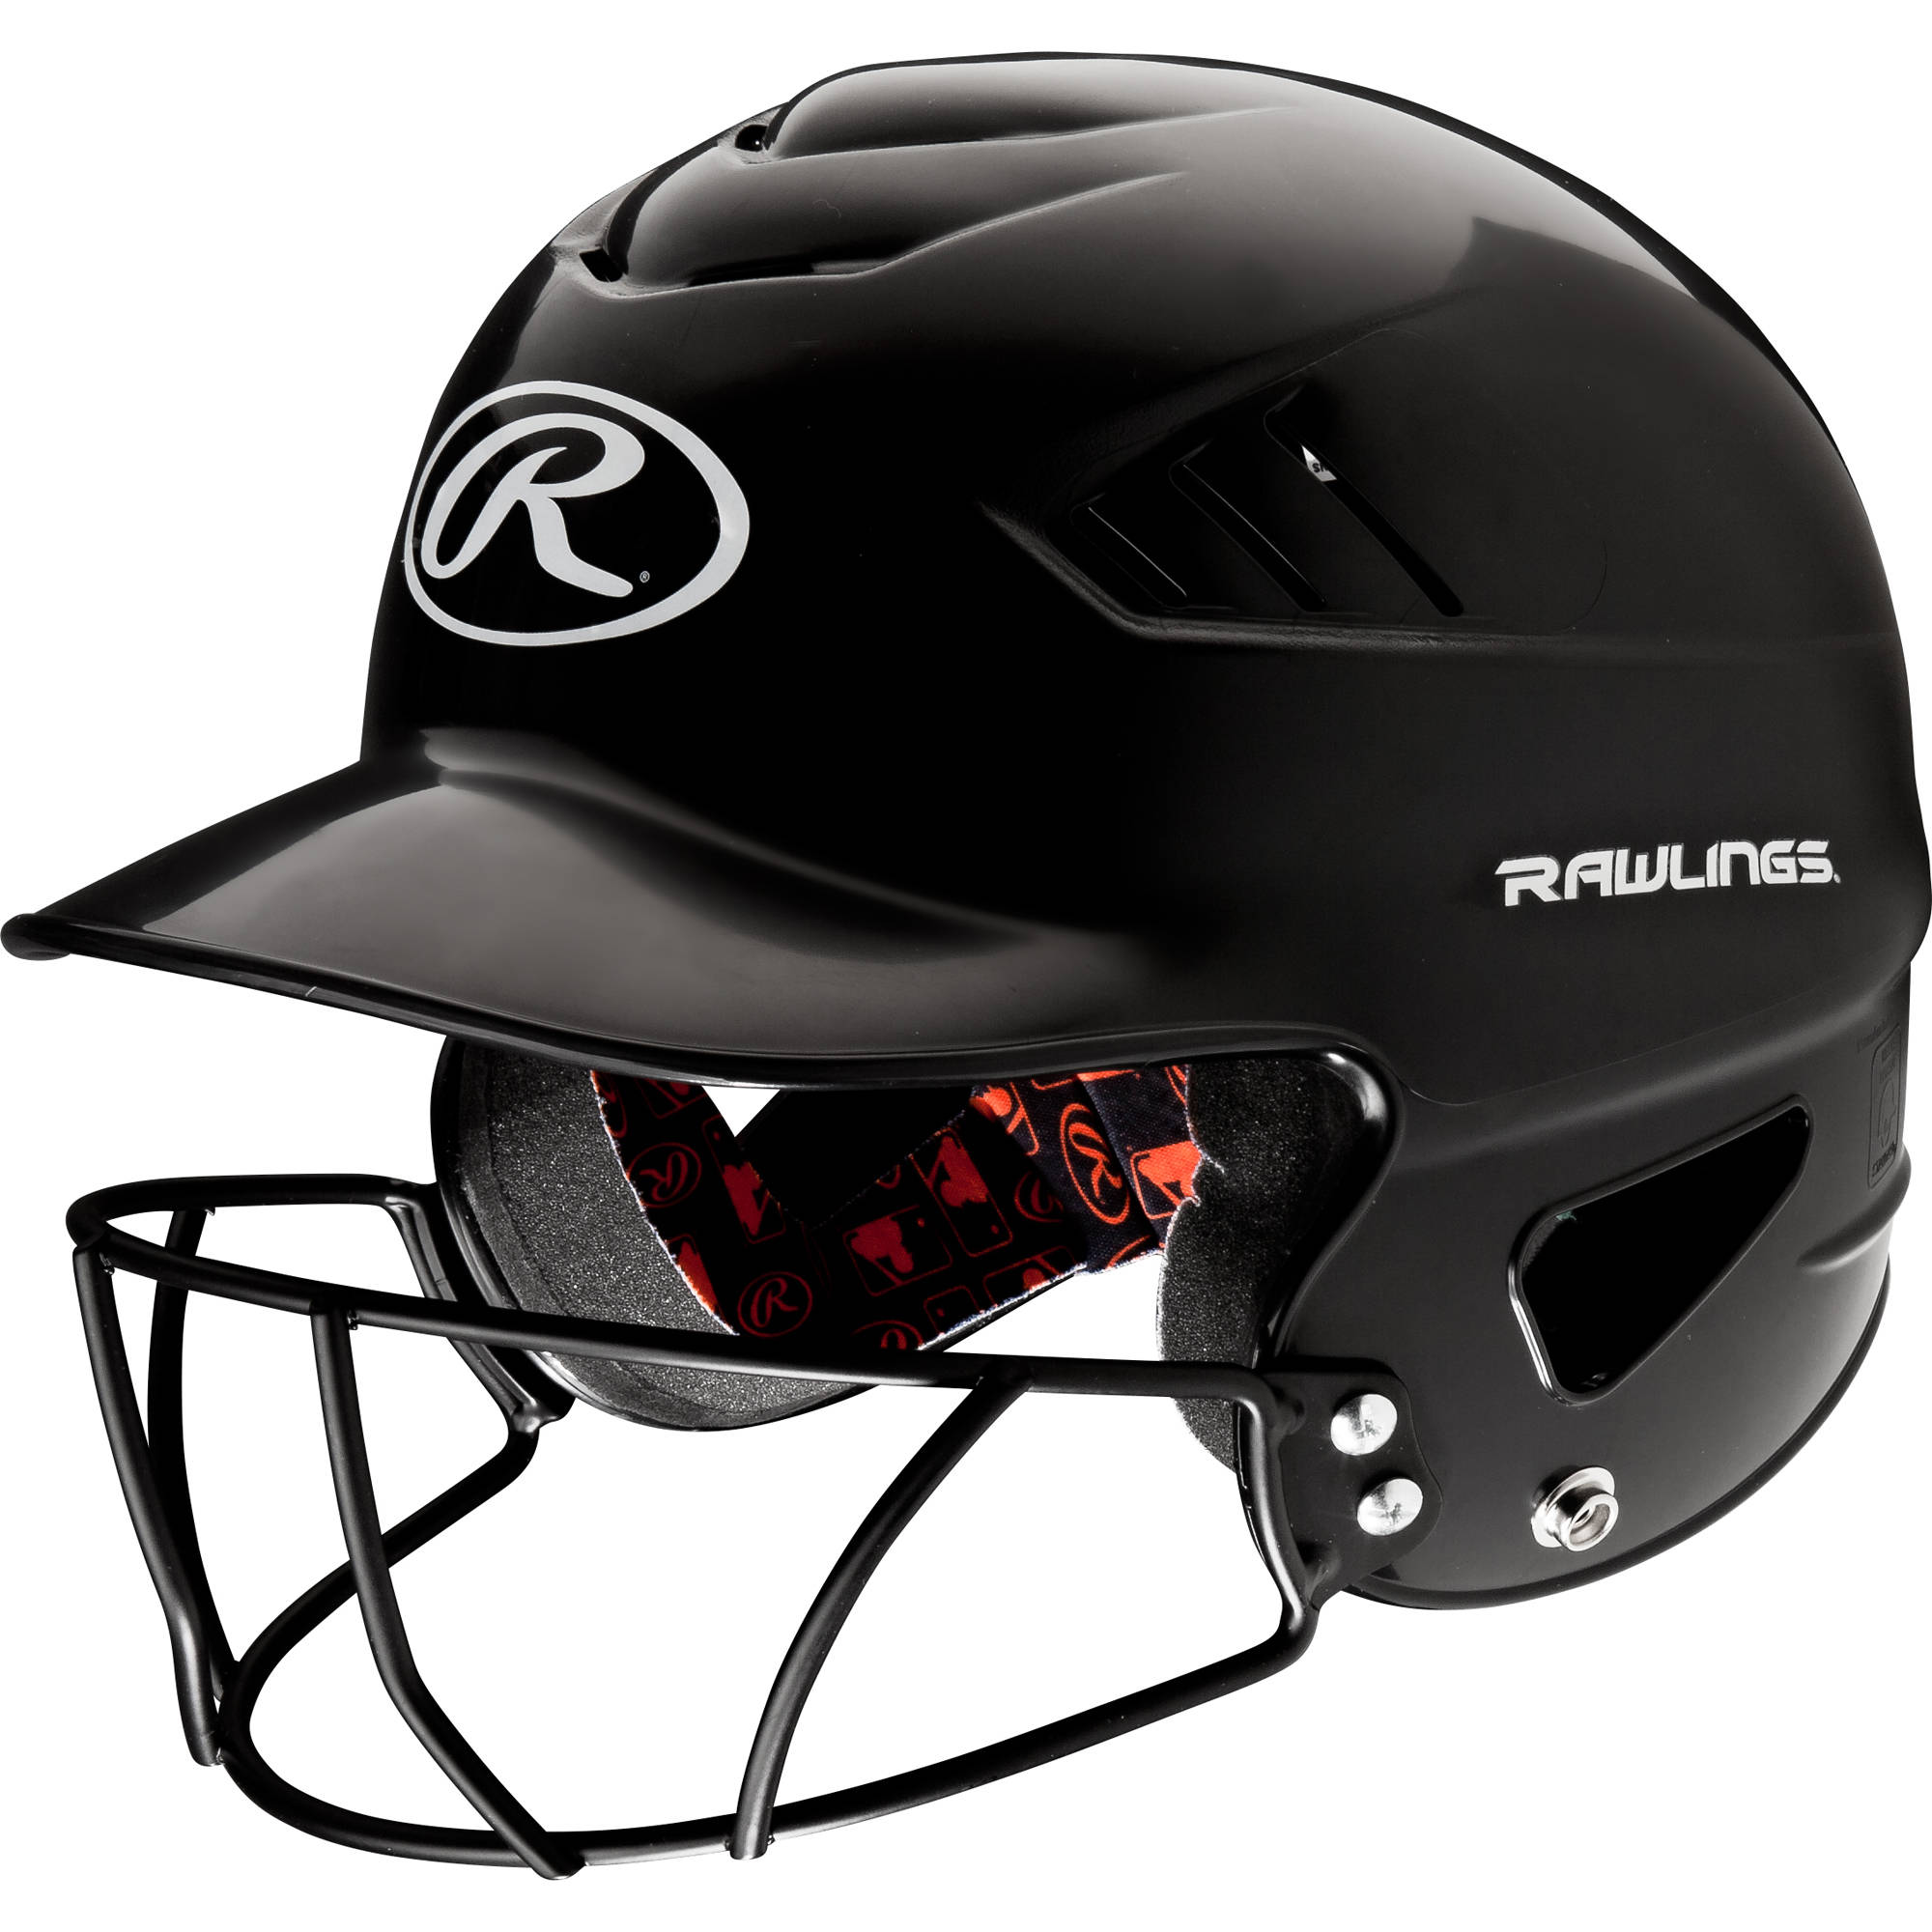 Rawlings Coolflo Helmet with Mask, Black